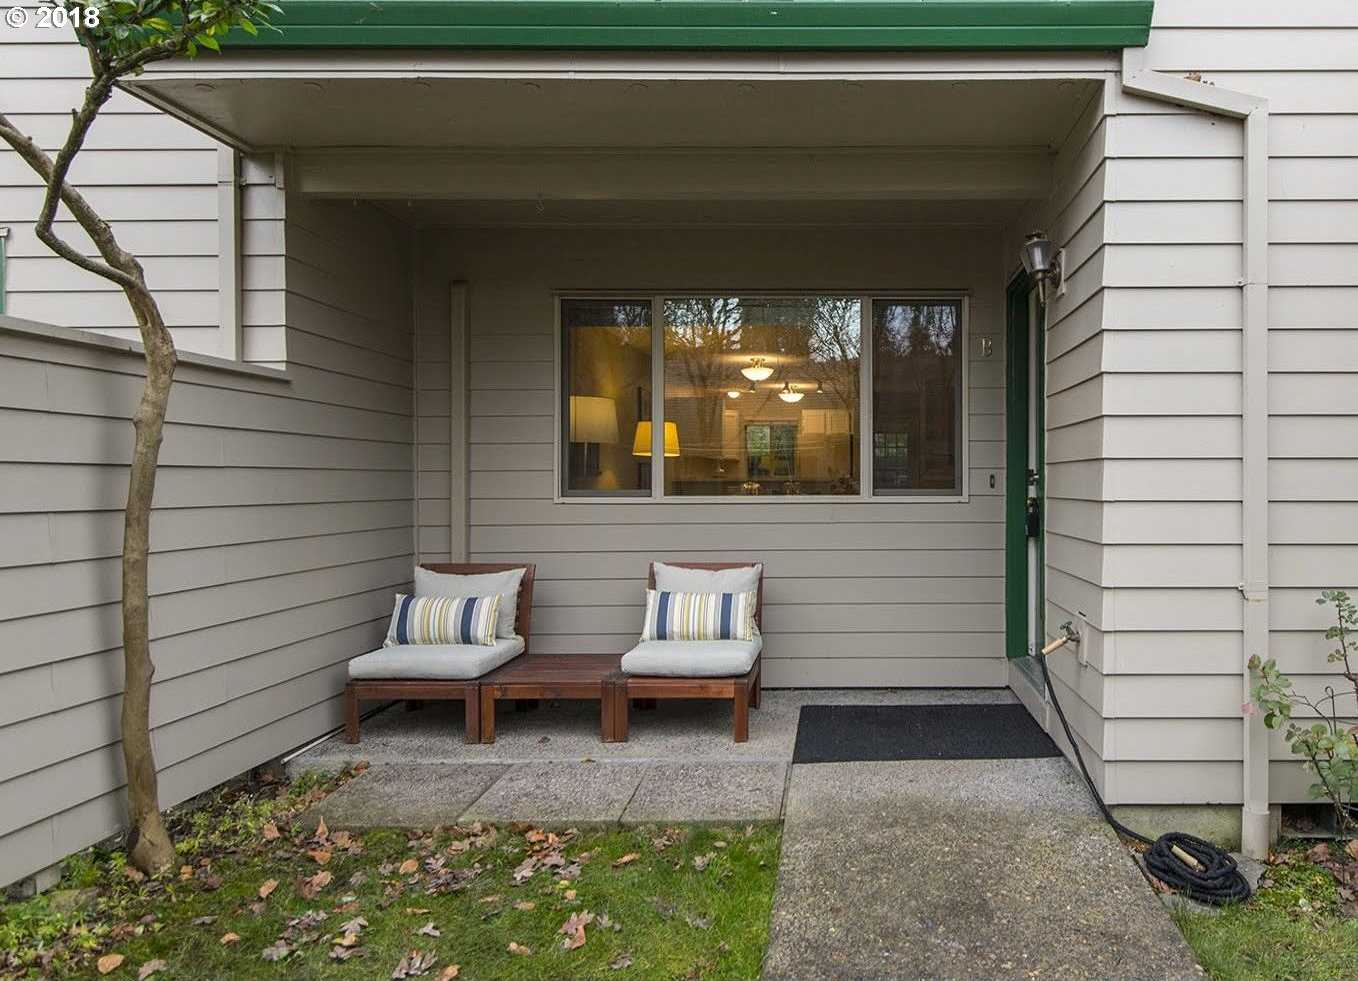 $325,000 - 1Br/1Ba -  for Sale in Nw 23rd/alphabet District, Portland